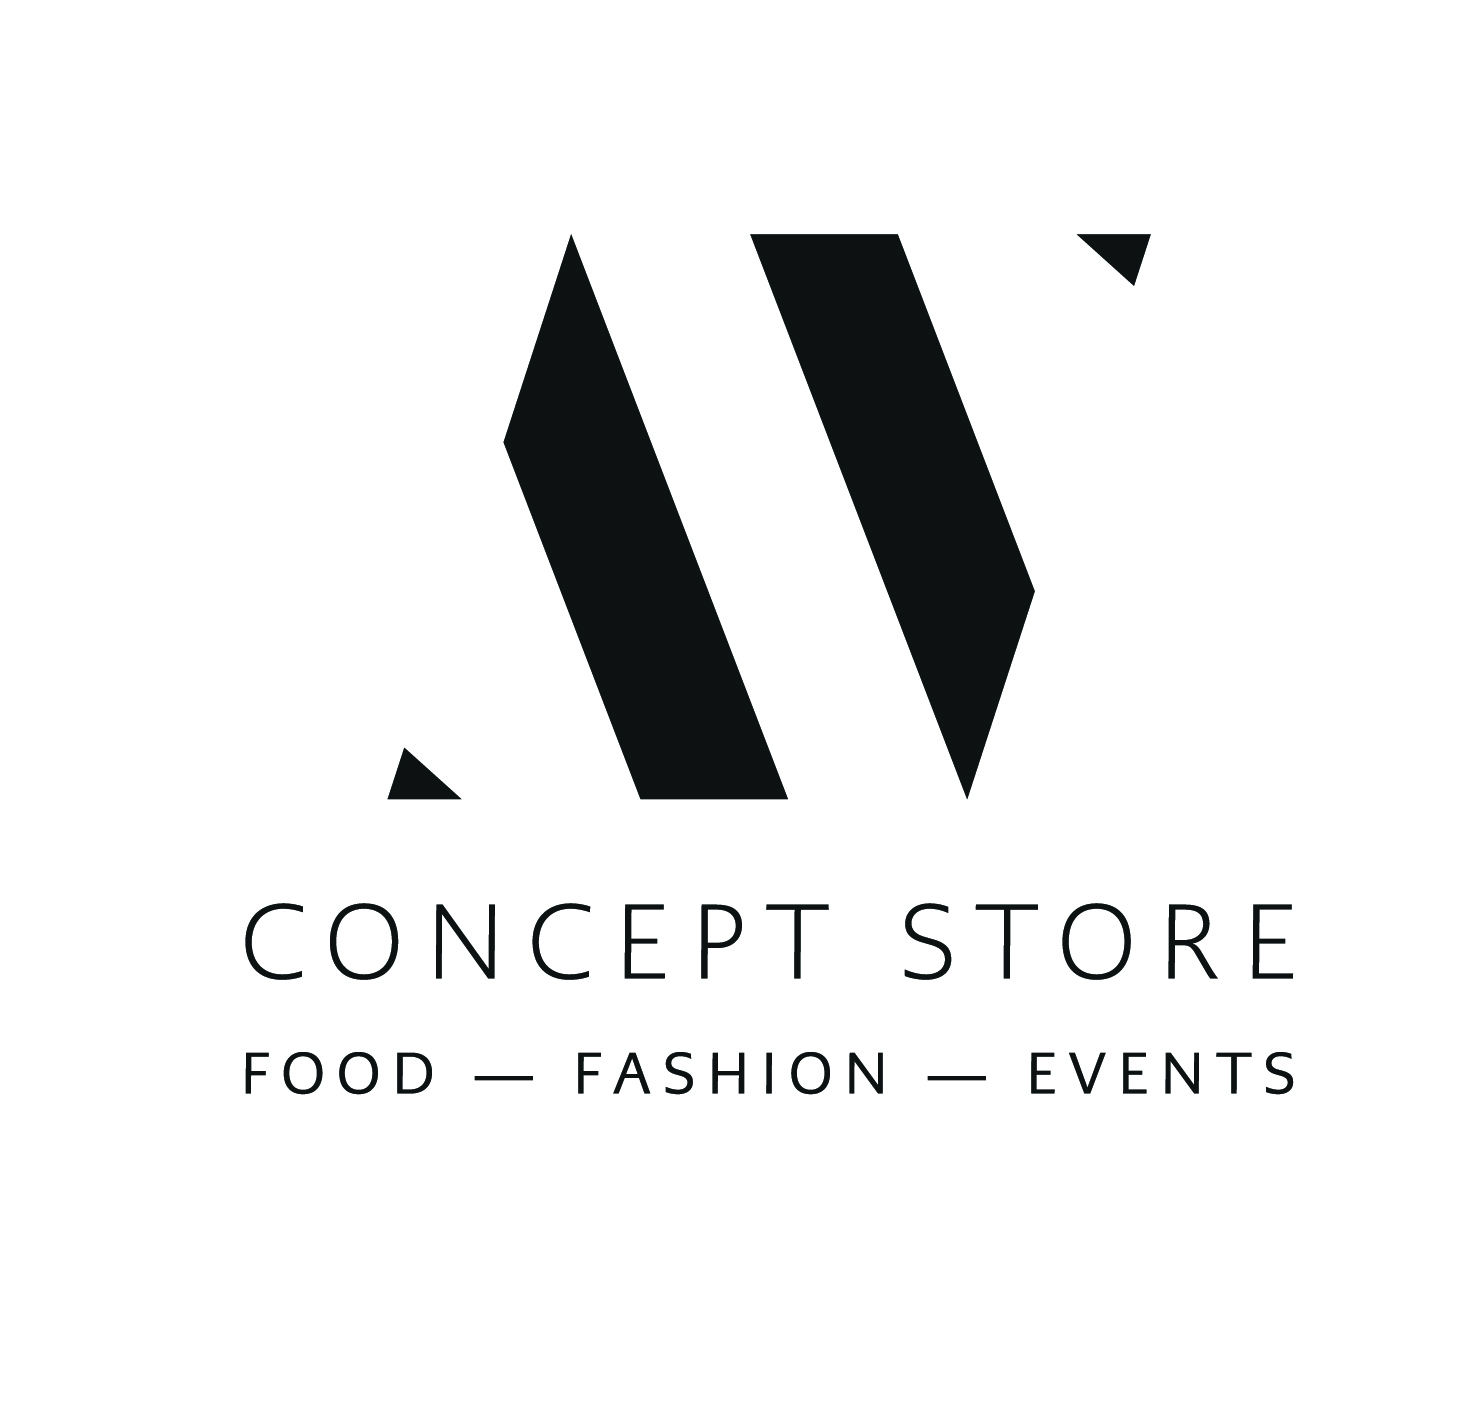 Logo Concept Store, Food, Fashion, Events